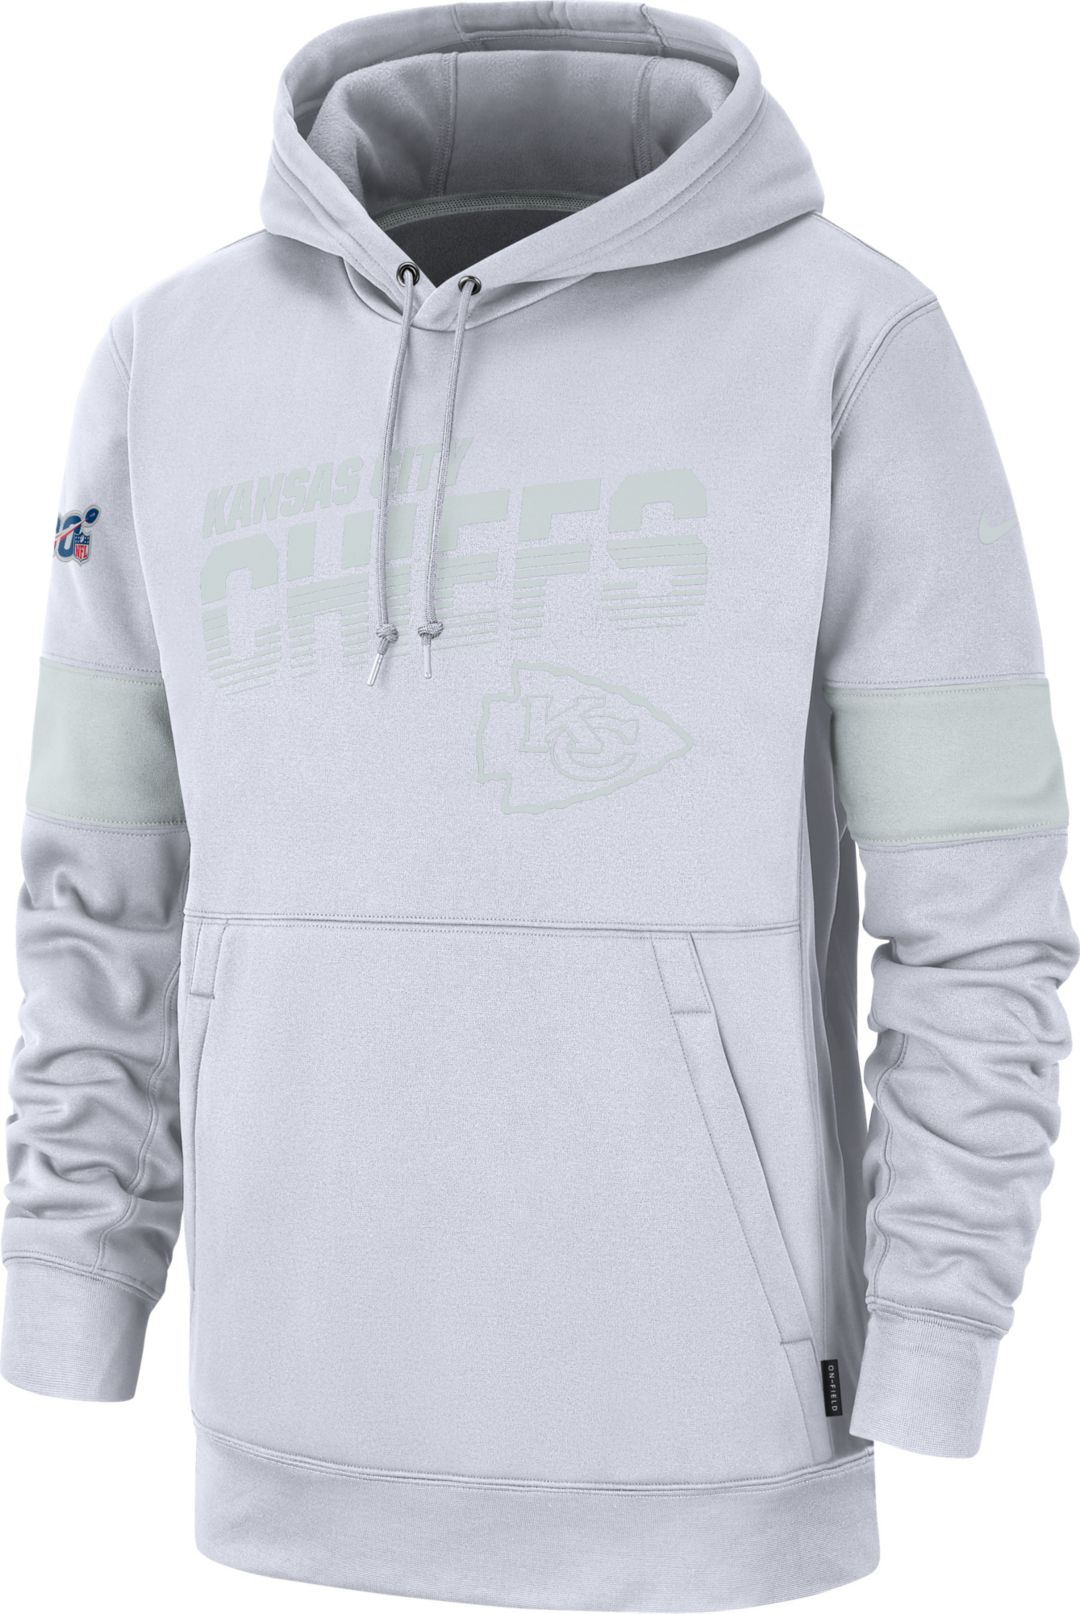 9ac13f71 Nike Men's Kansas City Chiefs 100th Sideline Therma-FIT Pullover White  Hoodie